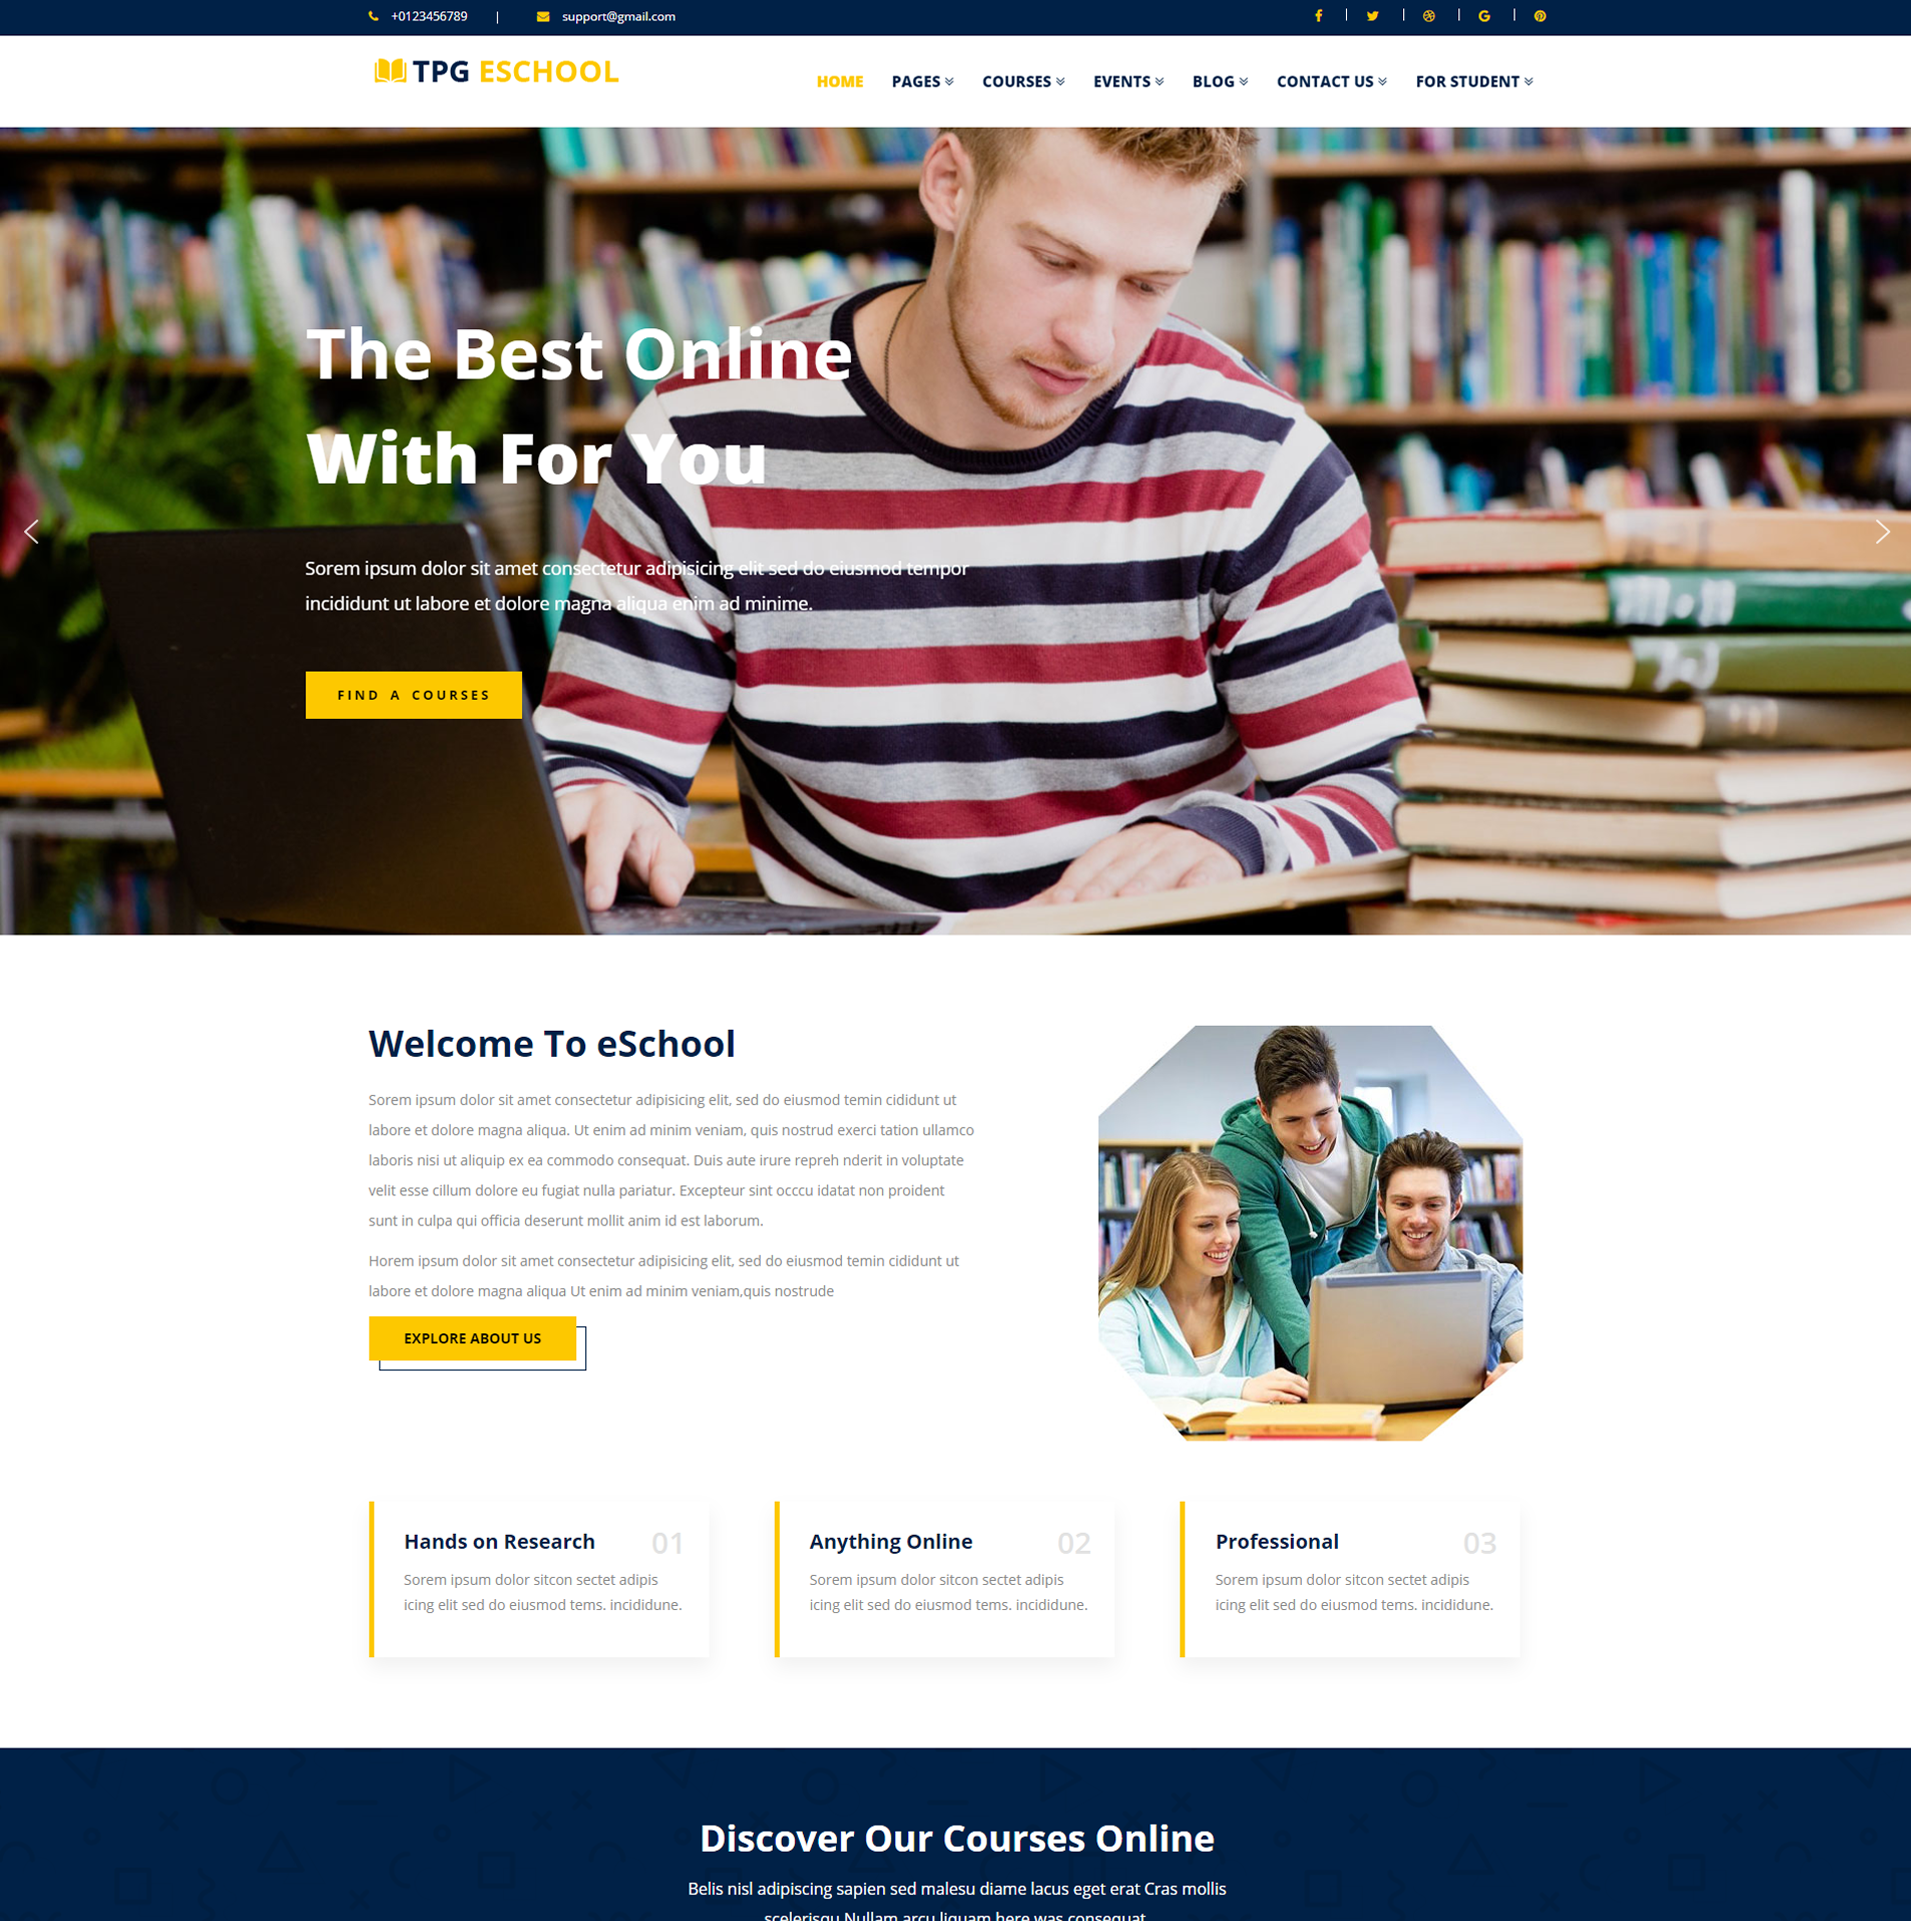 tpg-eschool-free-responsive-wordpress-theme-mockup